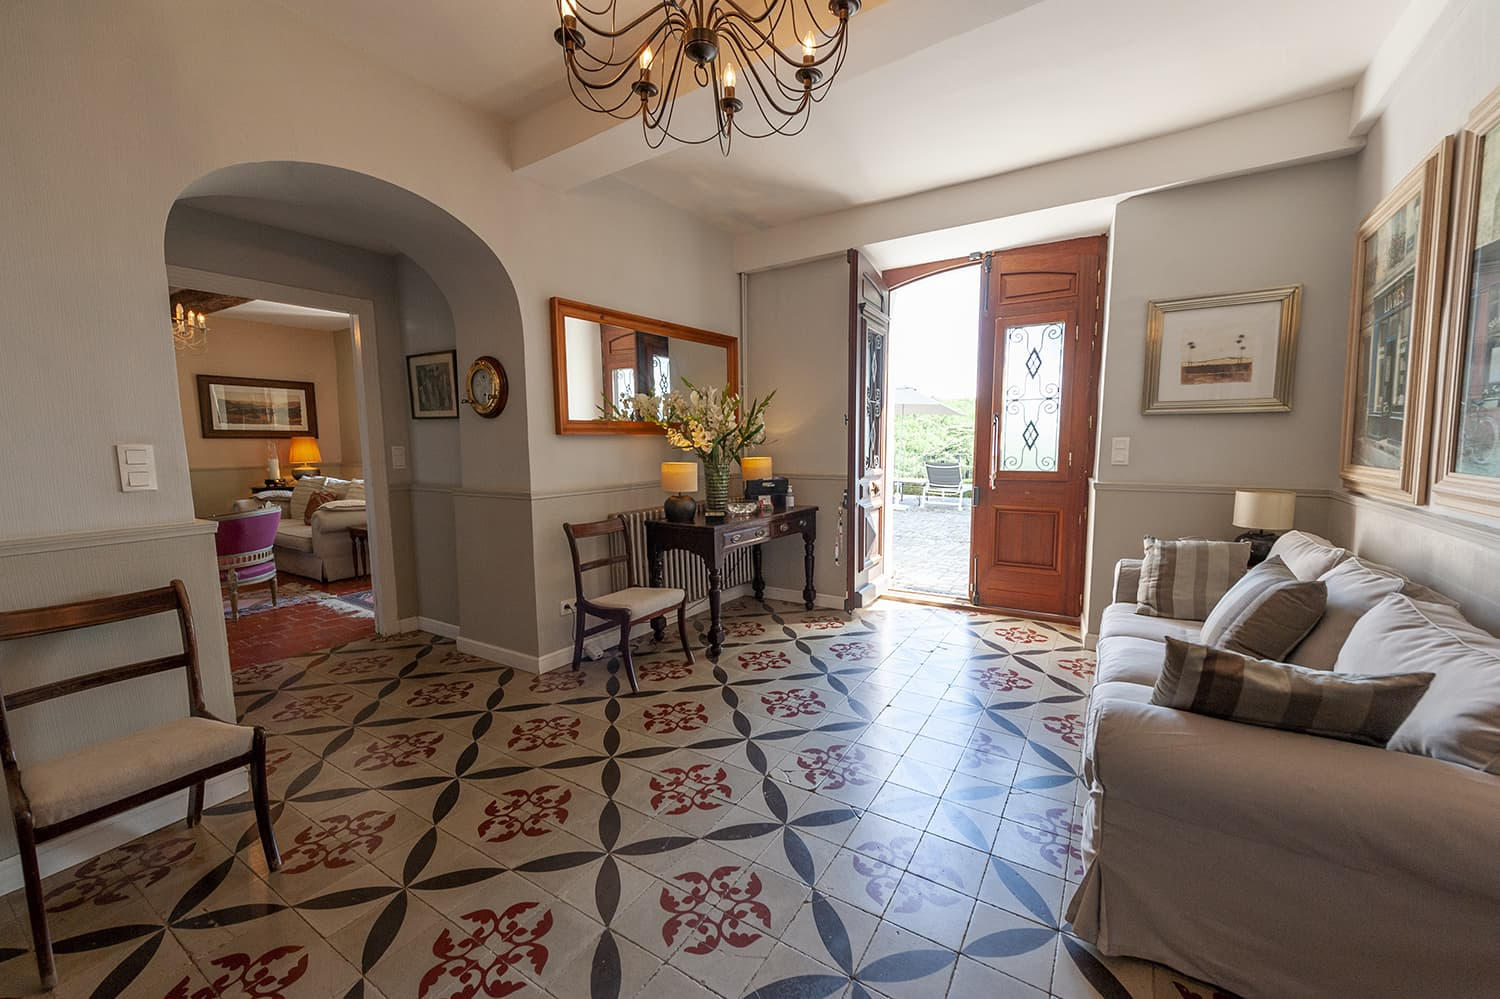 Entrance hallway with Languedoc patterned tiles, Domaine de Nérige